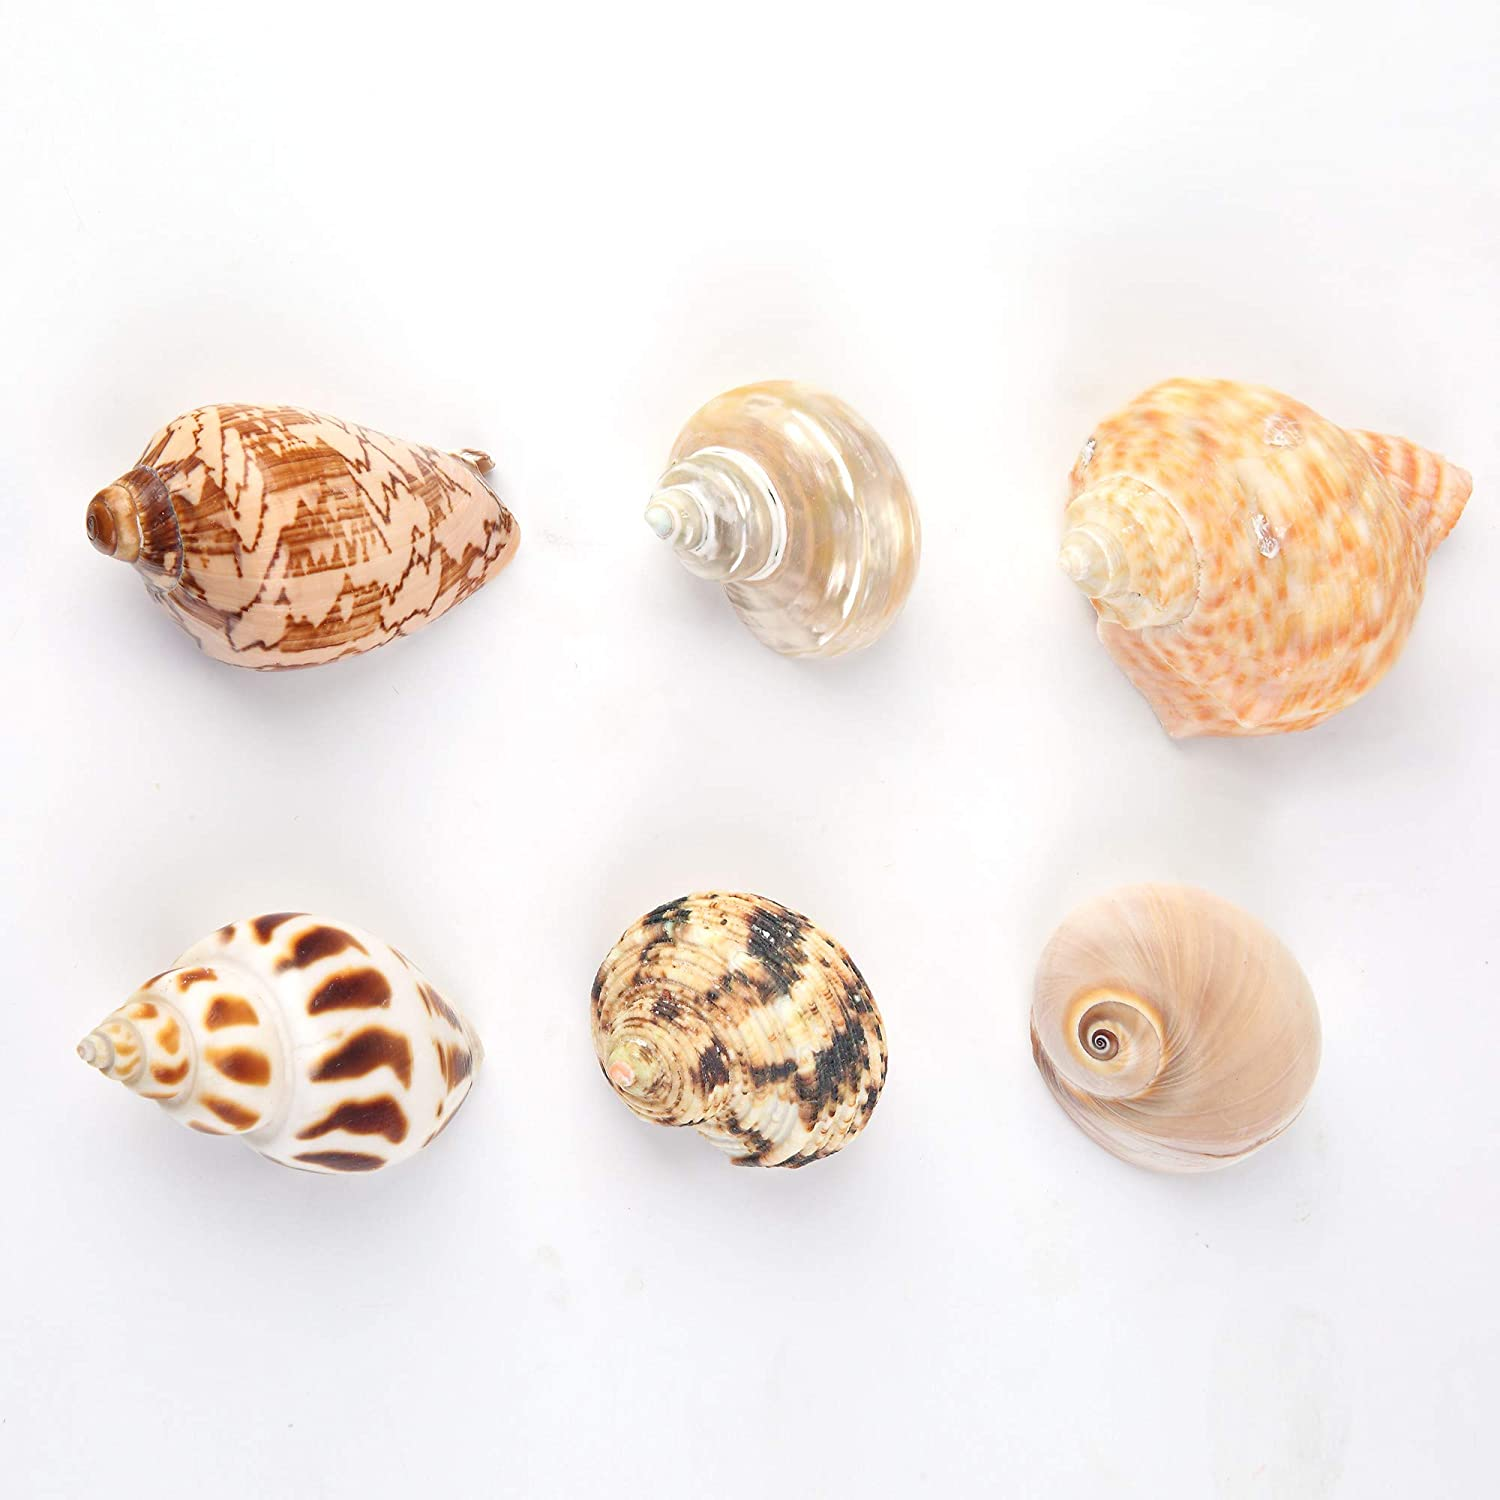 Large Hermit Crab Shells for Adult Crabs,6 Pack Different Types Natural Seashells No Painted Changing Shells Growth Shell,1 to 2 inch Opening Width